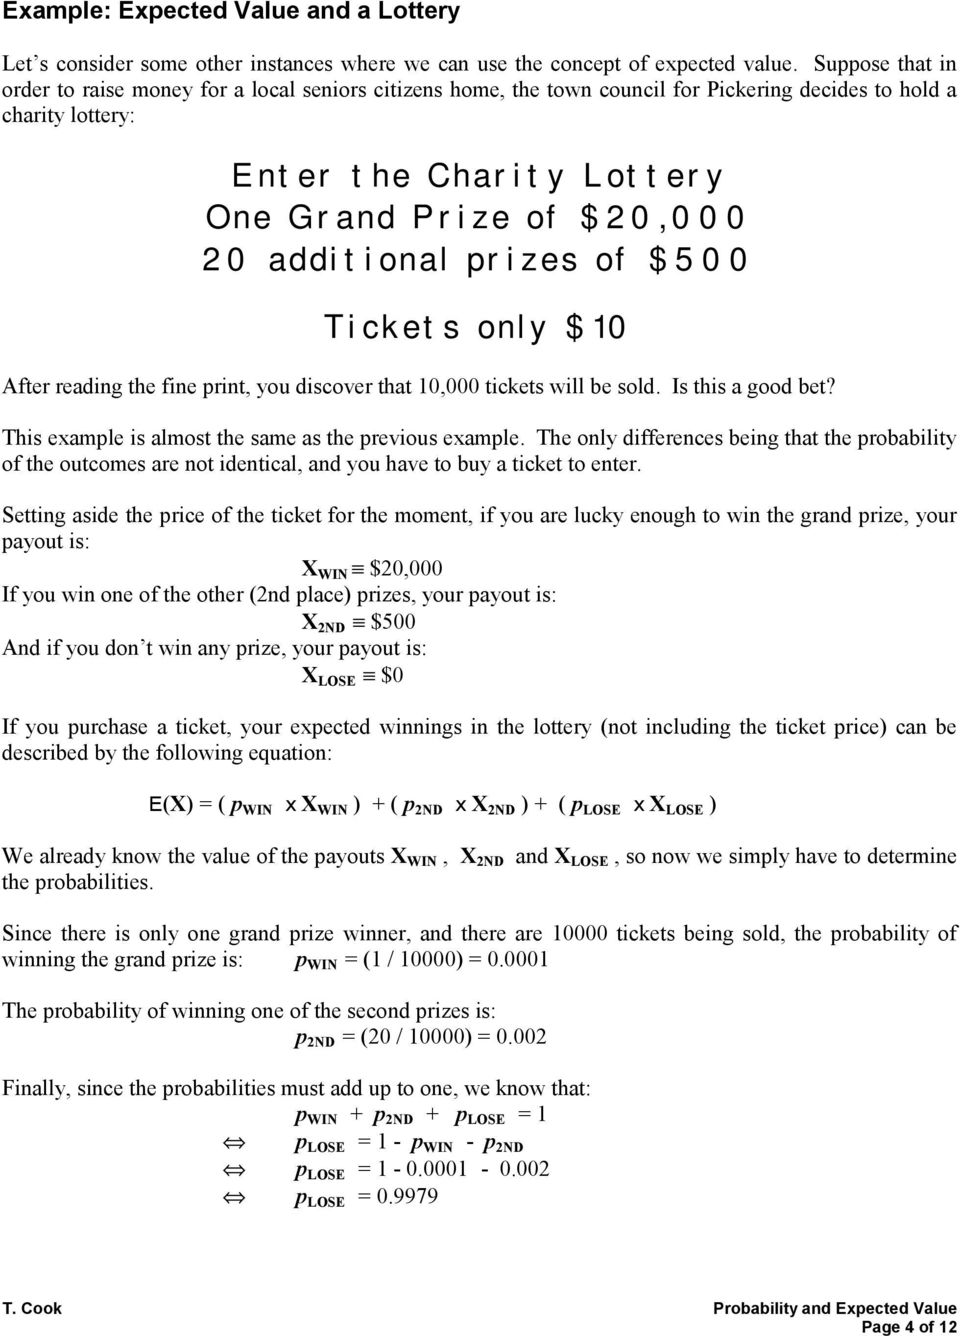 additional prizes of $500 Tickets only $10 After reading the fine print, you discover that 10,000 tickets will be sold. Is this a good bet? This example is almost the same as the previous example.